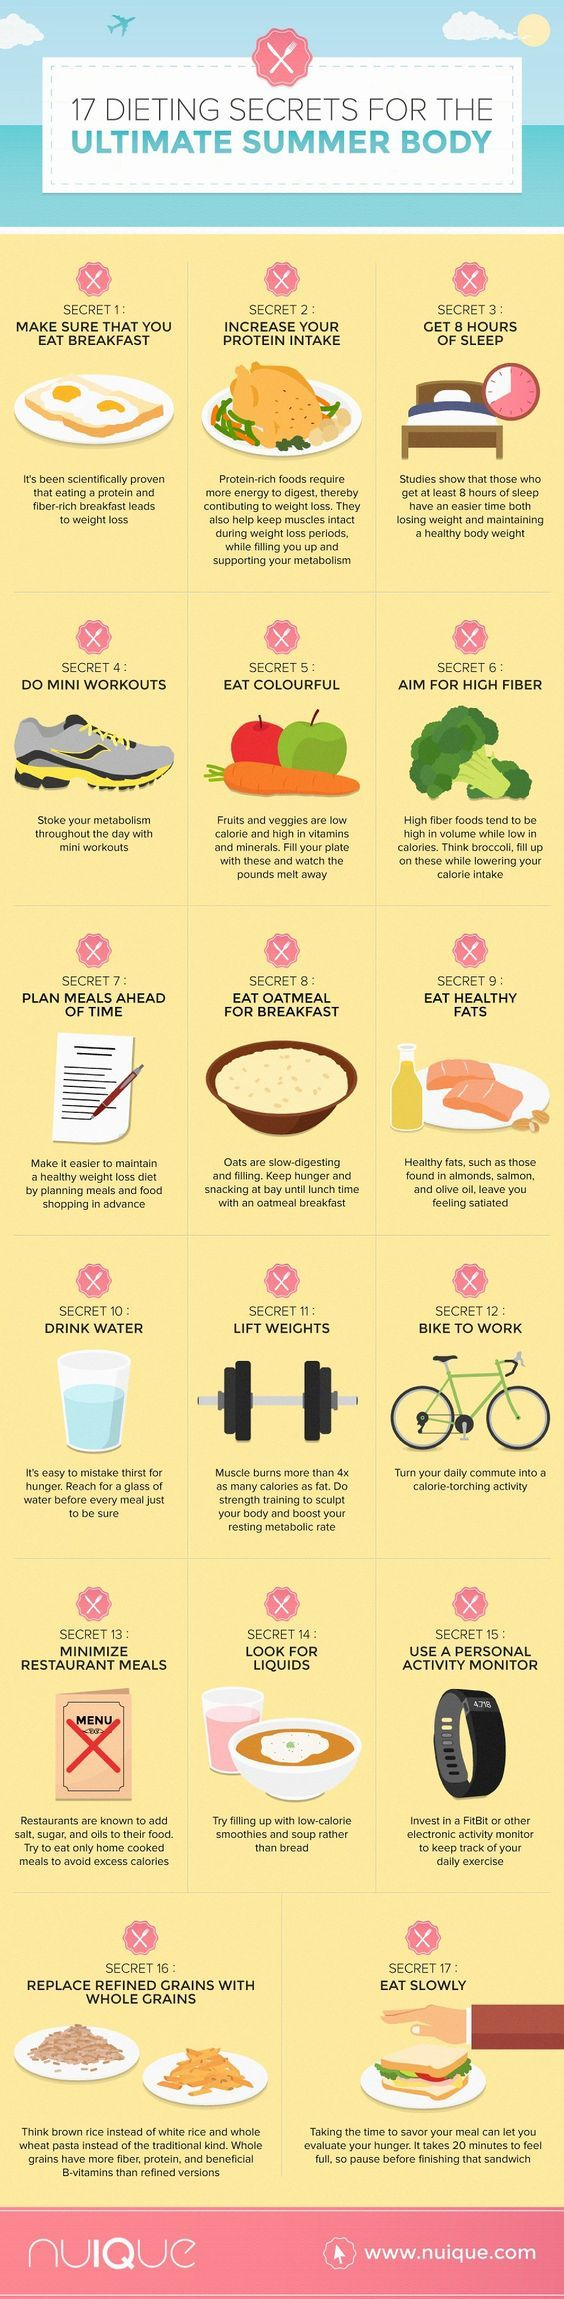 17 Dieting Secrets for the Ultimate Summer Body #infographic #Health #Dieting: